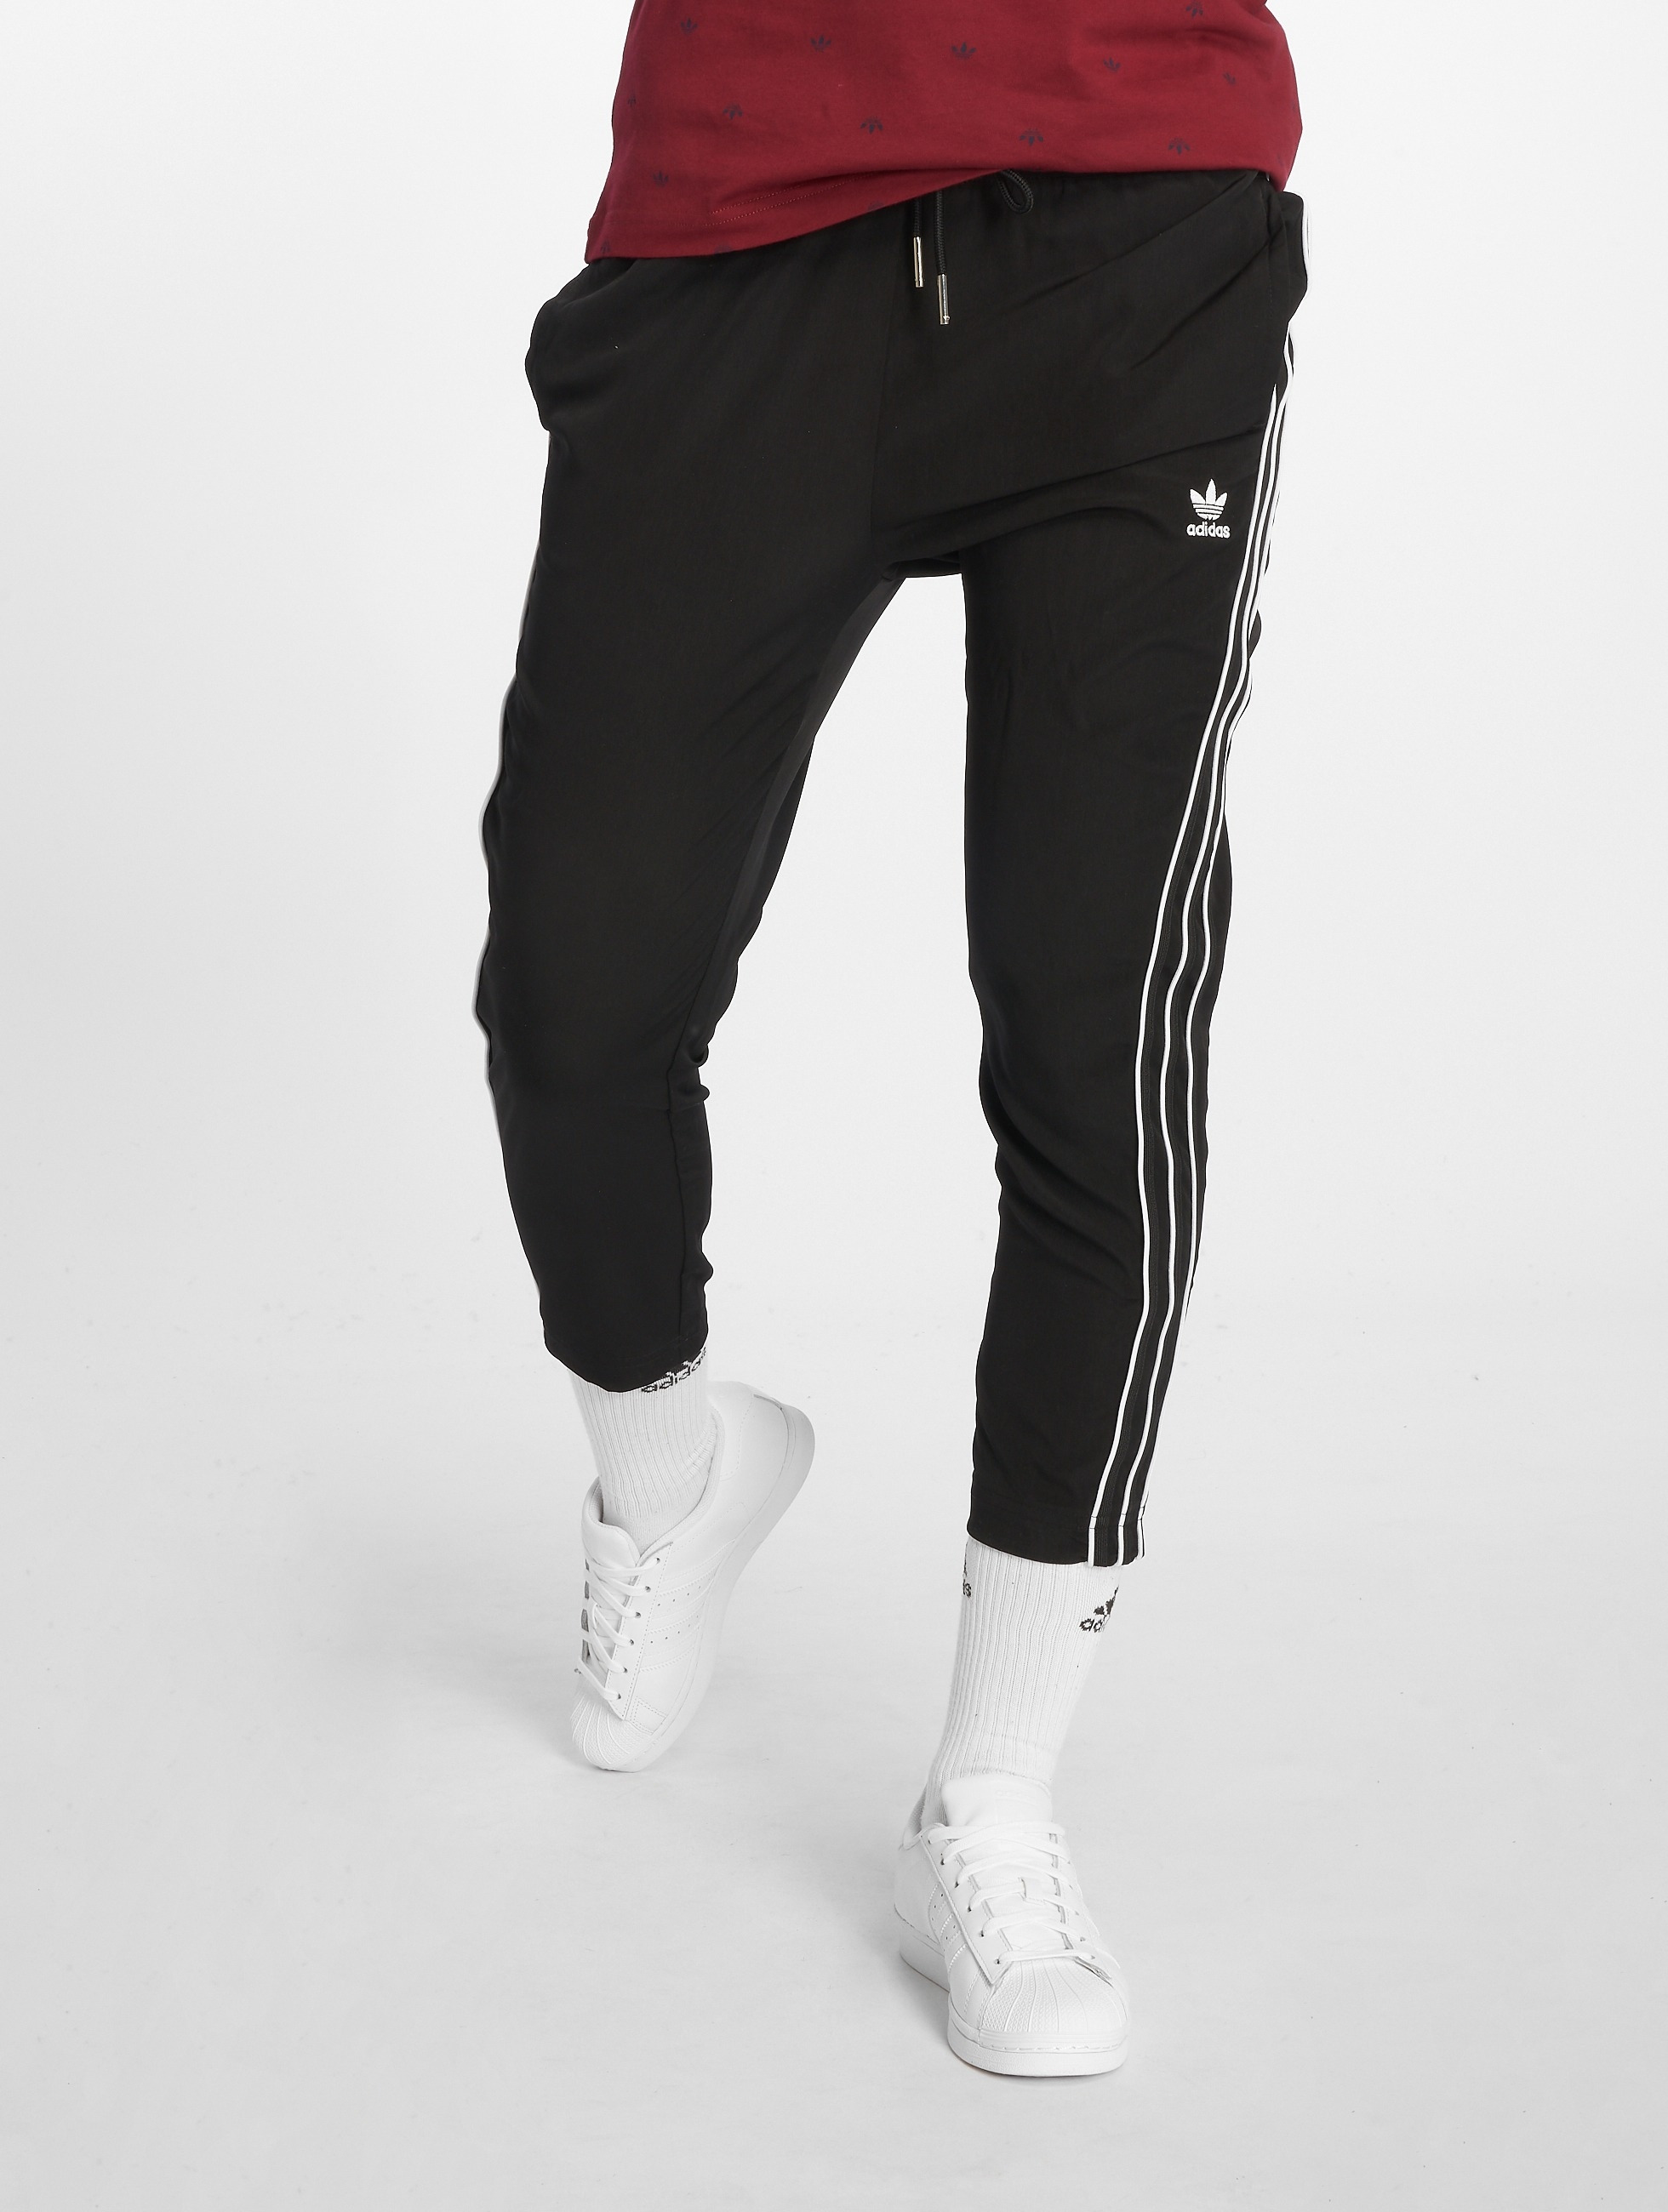 2f865ea6ef5623 adidas originals Damen Jogginghose SC Sweat in schwarz 582360